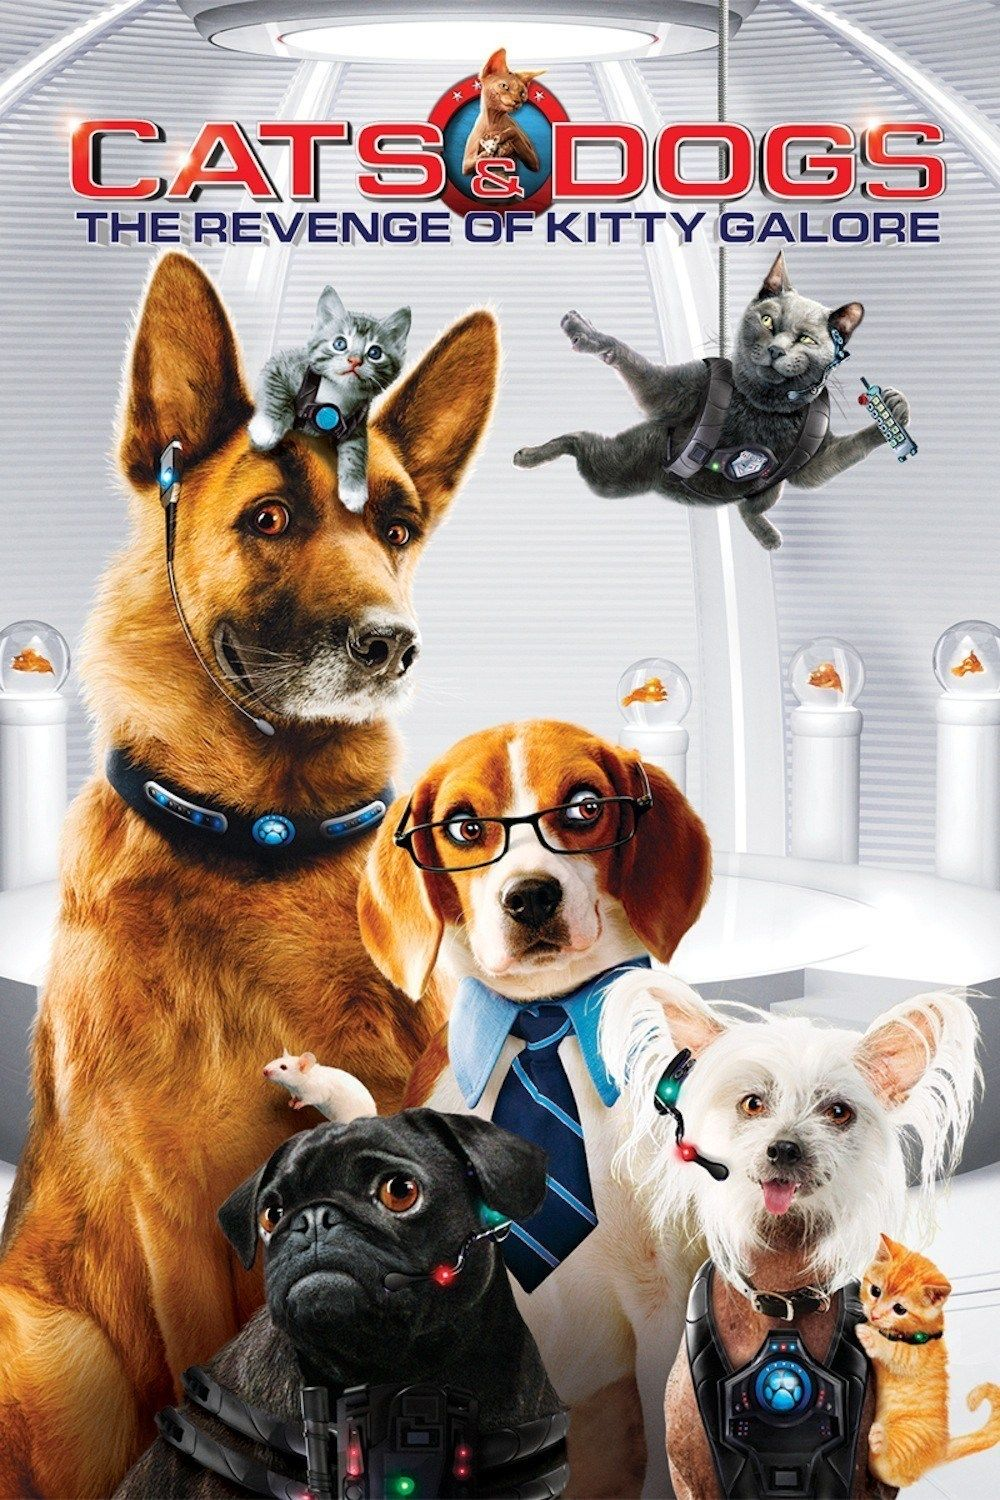 Cat Love ♥ Film Cats & Dogs The Revenge of Kitty